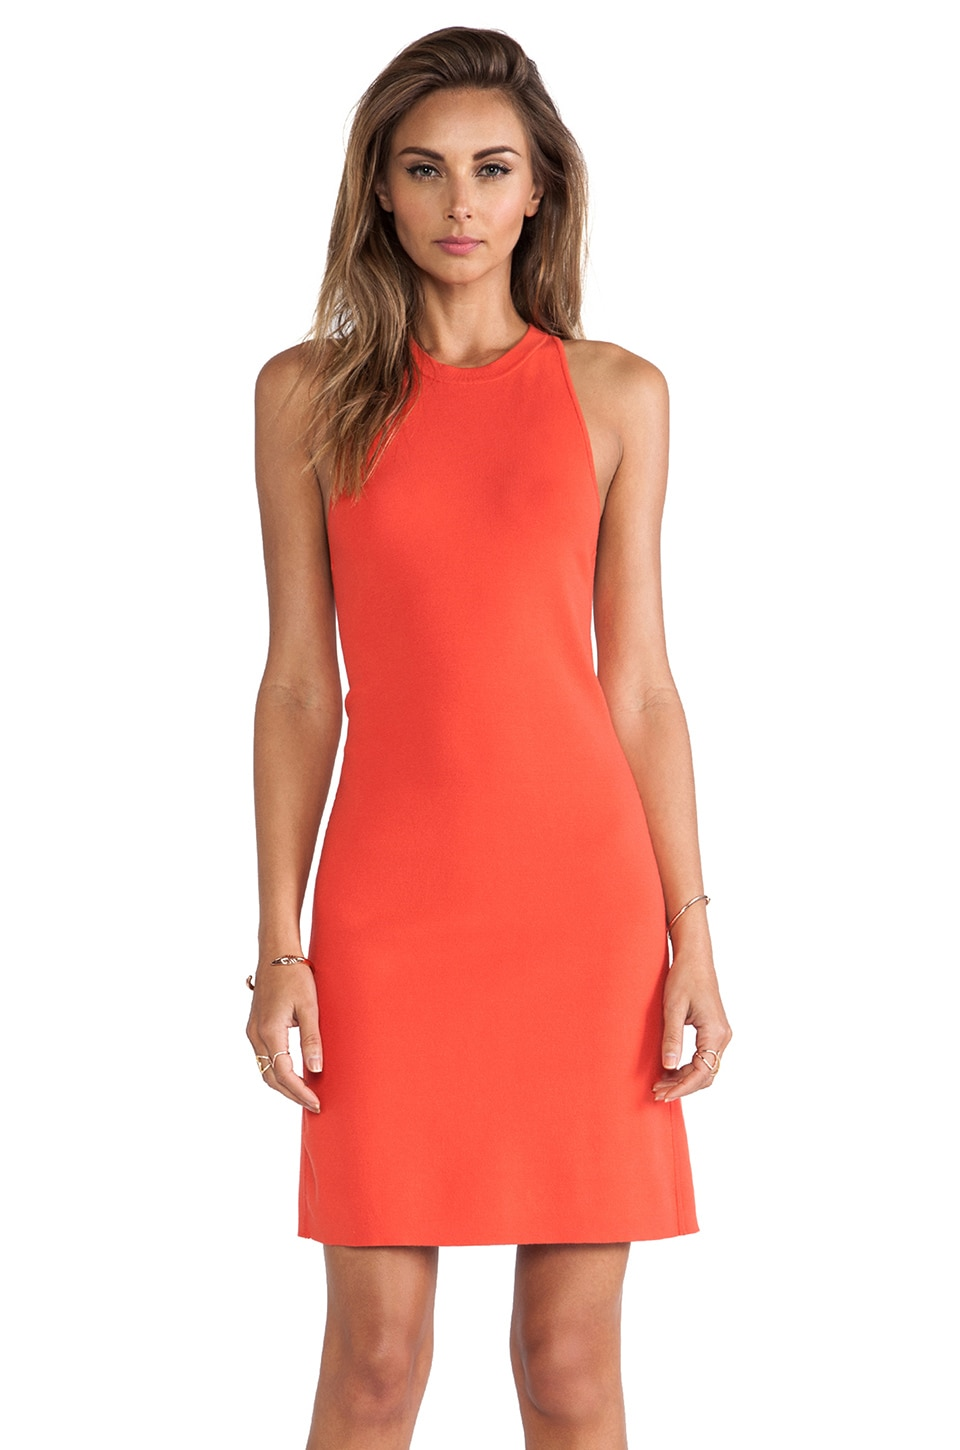 Theory Wellra Dress in Flame